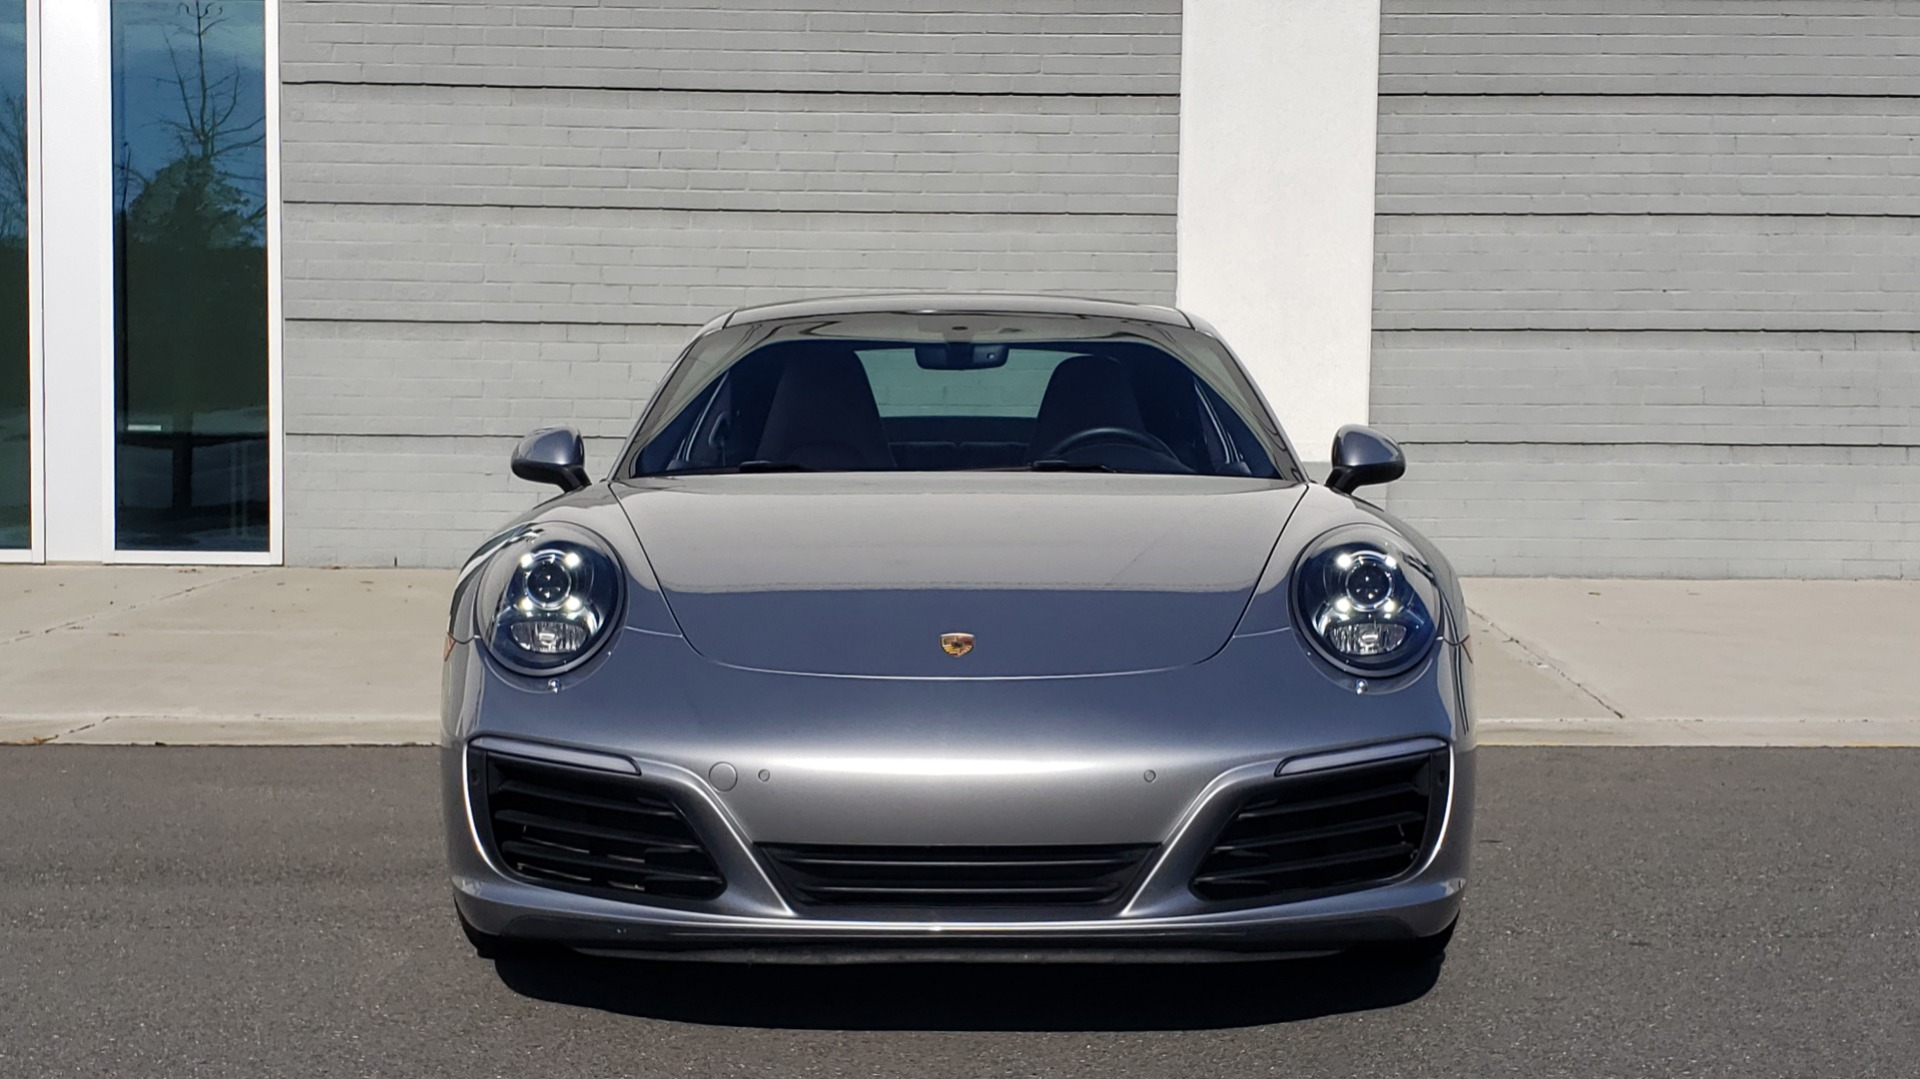 Used 2017 Porsche 911 CARRERA COUPE / 3.0L / 7-SPD MAN / NAV / PDLS / SUNROOF / REARVIEW for sale Sold at Formula Imports in Charlotte NC 28227 23